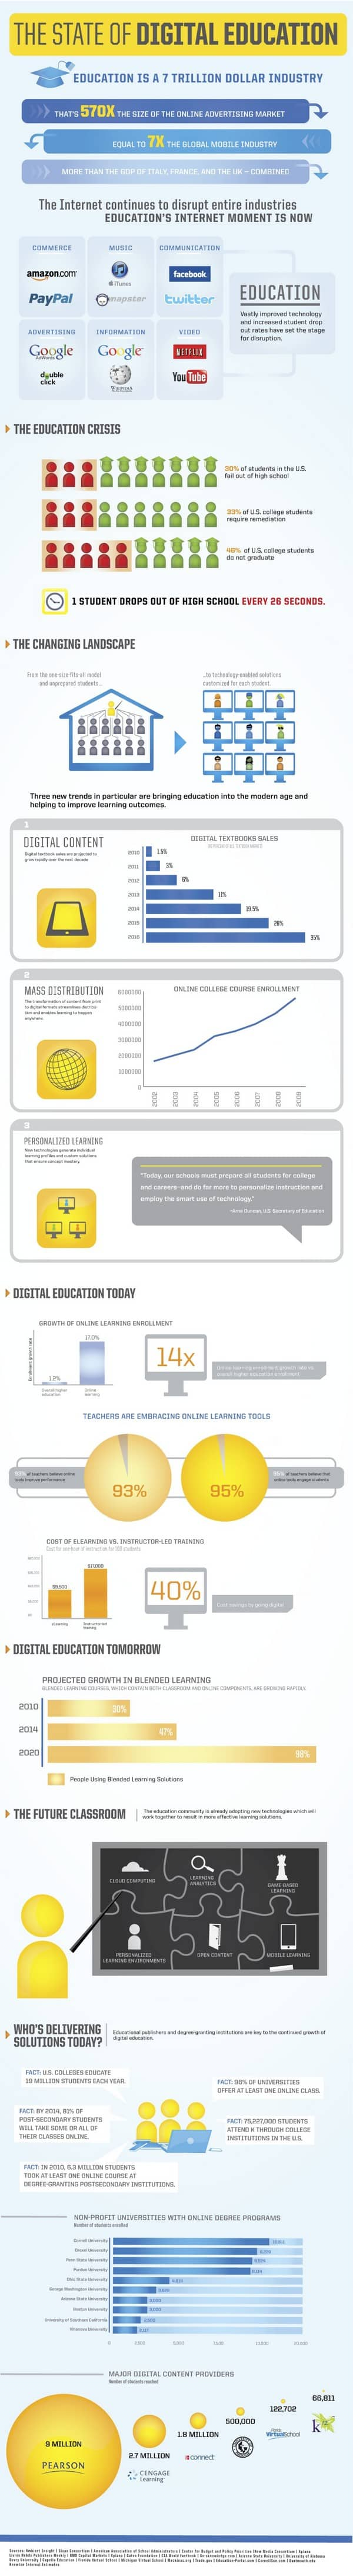 The State of Digital Education Infographic